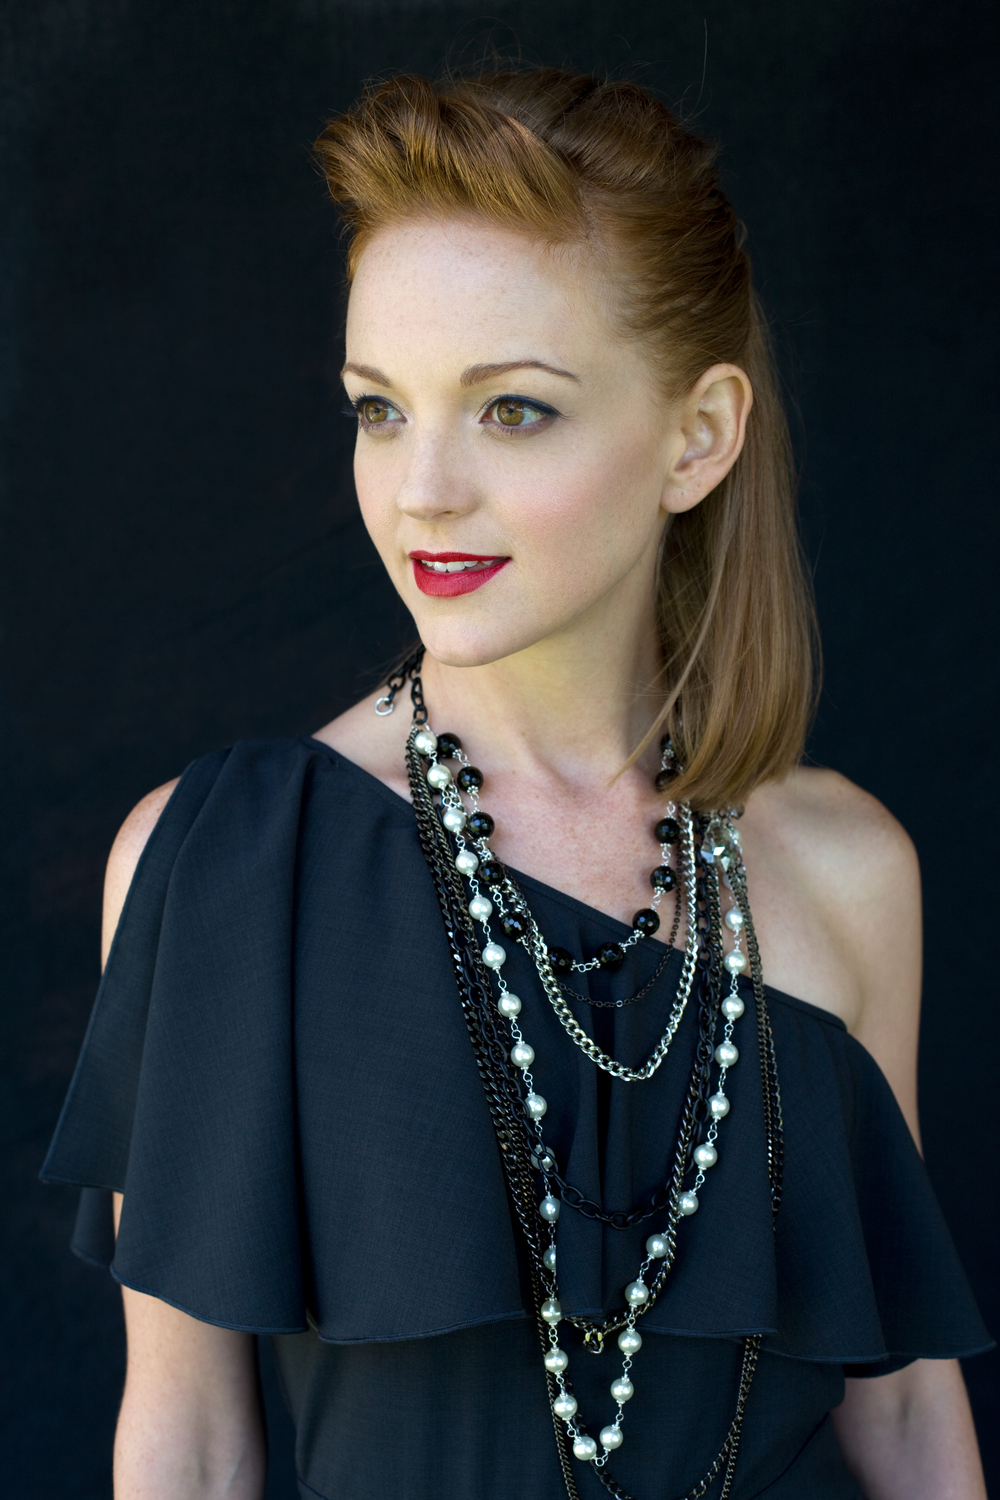 Jayma Mays - Riker Brothers (Photographer), Kelly Capoccia (Hair)